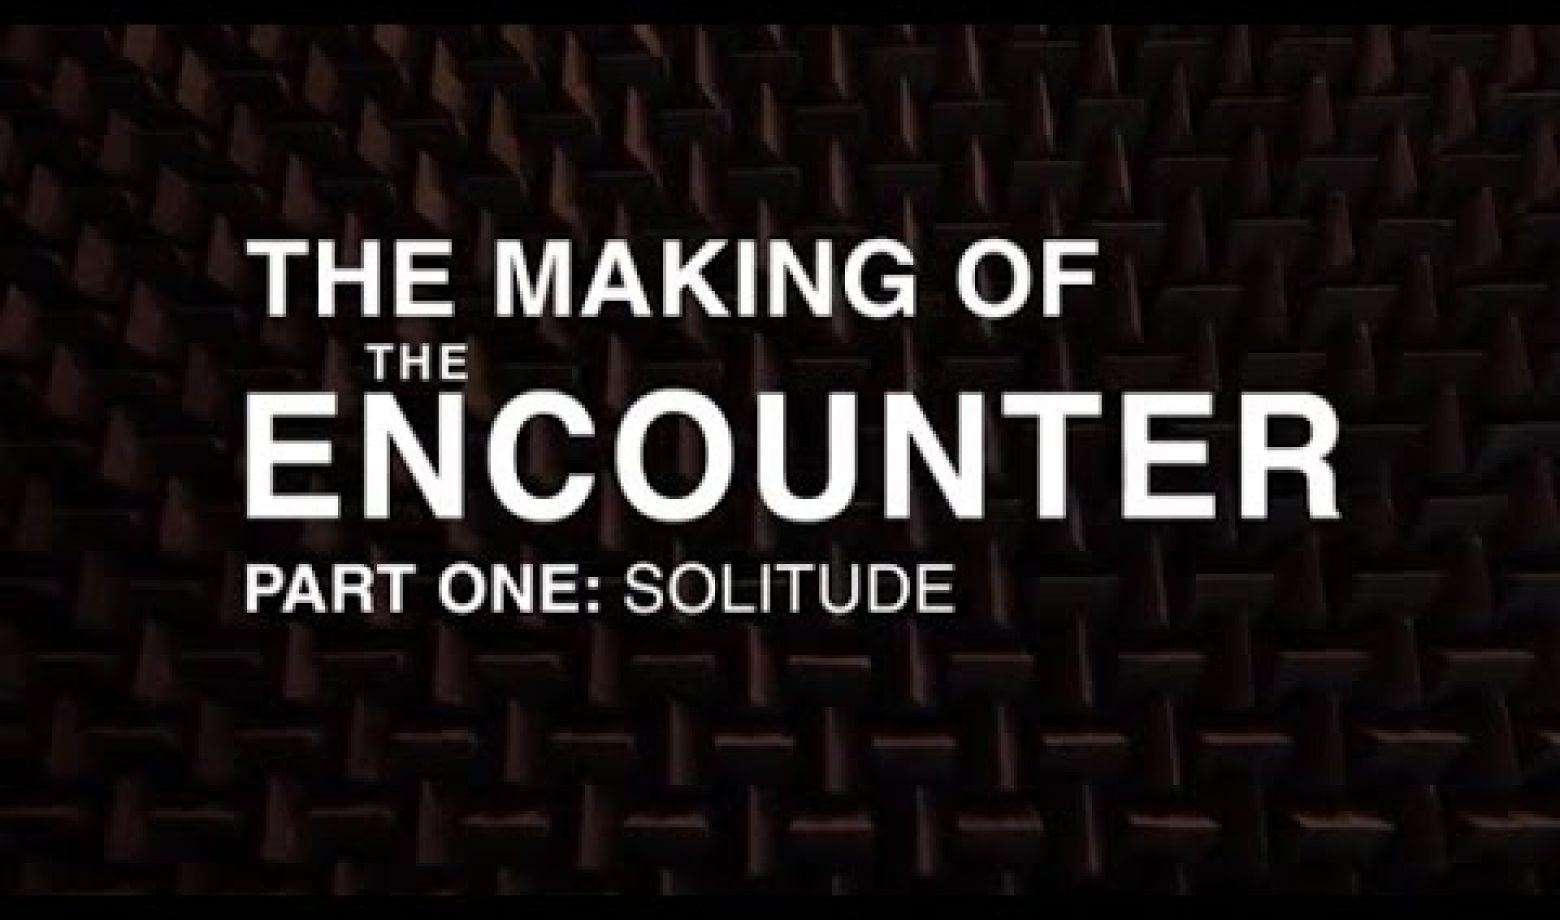 The Encounter - Making of